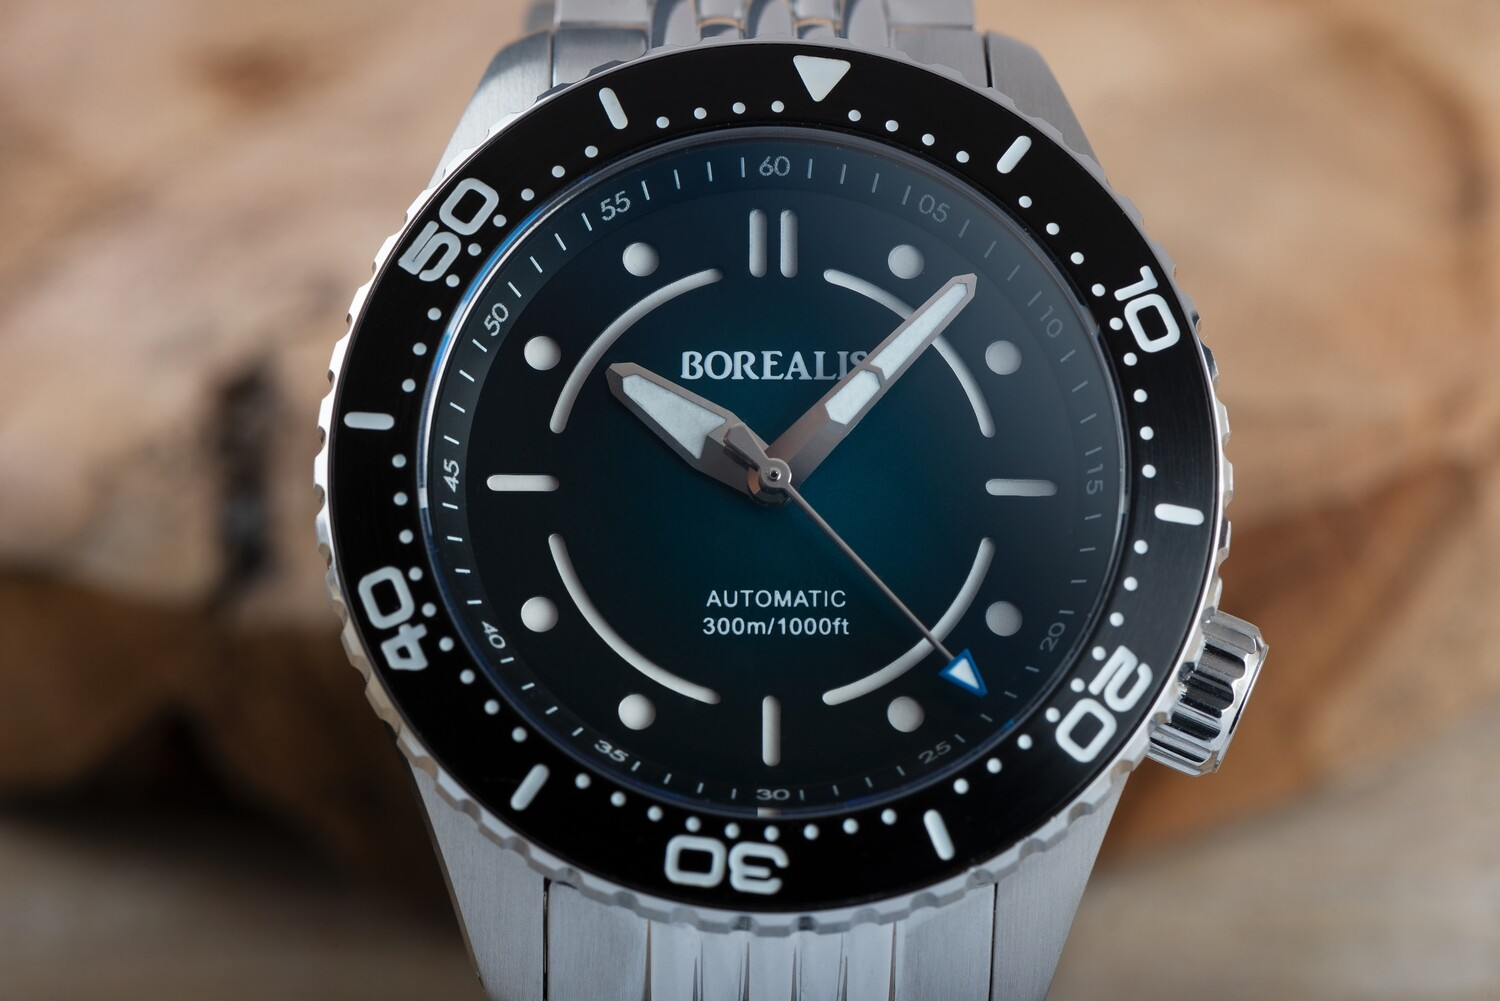 Pre-Order Borealis Neptuno Fade to Black Dial Date NH35 Automatic Movement 300m Diver Watch